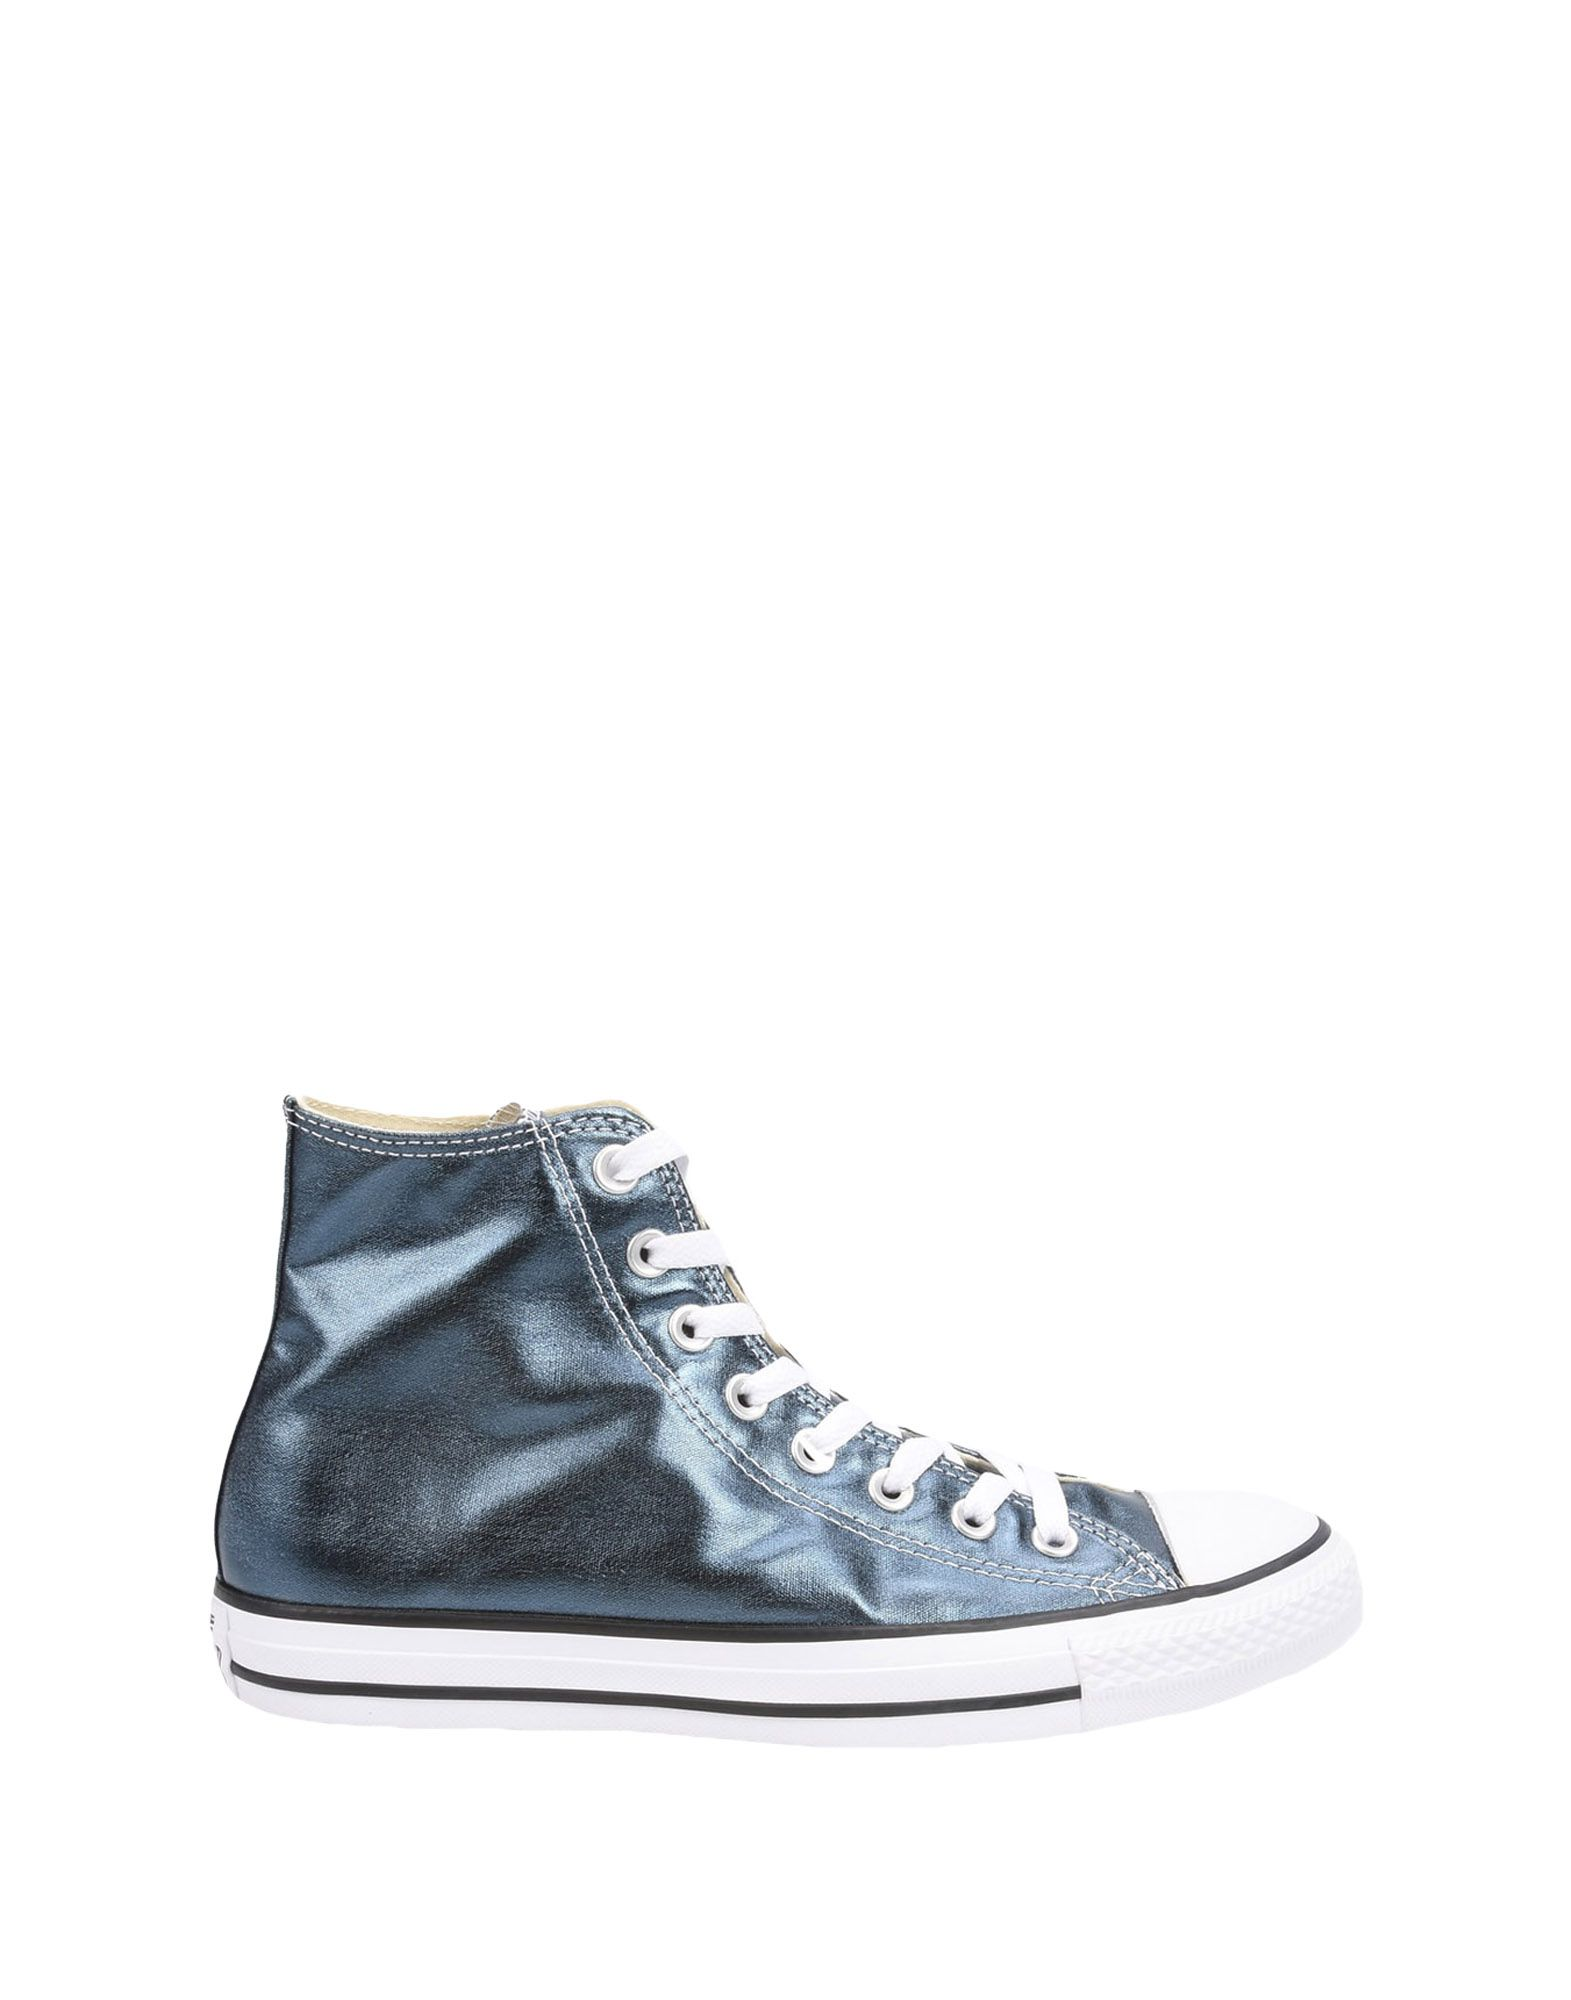 ... Sneakers Converse All Star Ct As Hi Canvas Metallic - Femme - Sneakers  Converse All Star ...